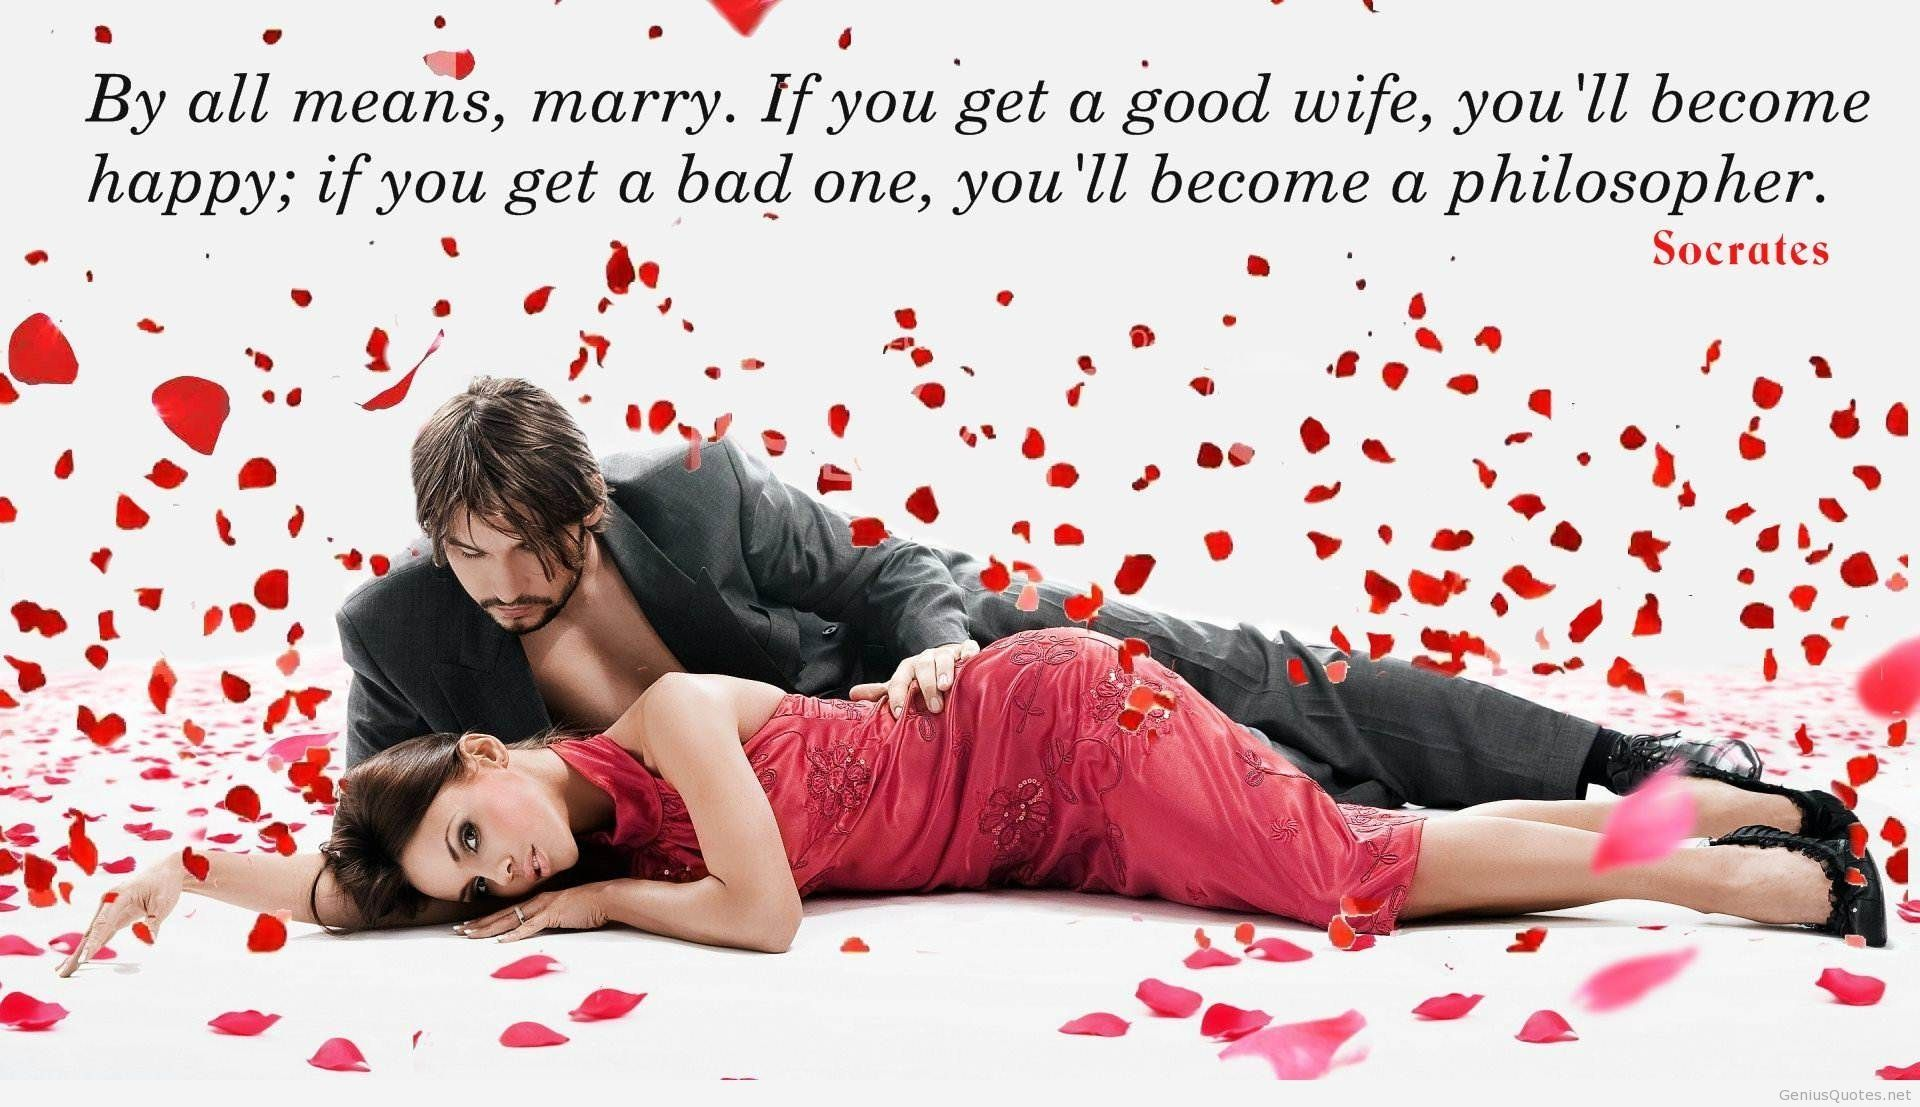 Images Of Love For Wife Hd Best 50 Quotes For Your Lovely Wife For Images Of Love For Wife Hd 1920 X 11 Good Wife Quotes Wife Quotes Love Quotes For Wife